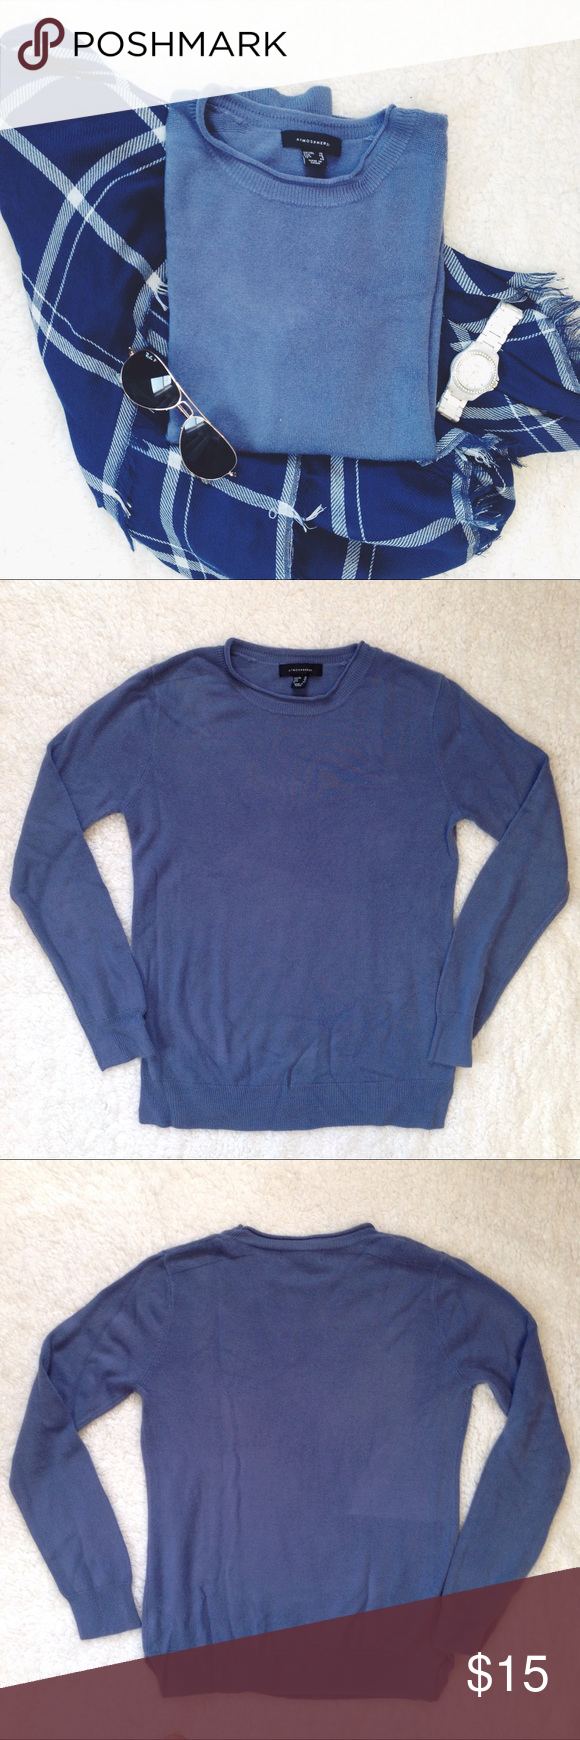 Atmosphere Pullover Sweater Dusty blue pullover sweater. Feels like cashmere! Long sleeves. Details on shoulders.  Condition: Gently worn. Minor pilling under arms, shown in photo   ◆If you'd like more pics or have questions, ask! 🚫NO TRADES🚫 Atmosphere Sweaters